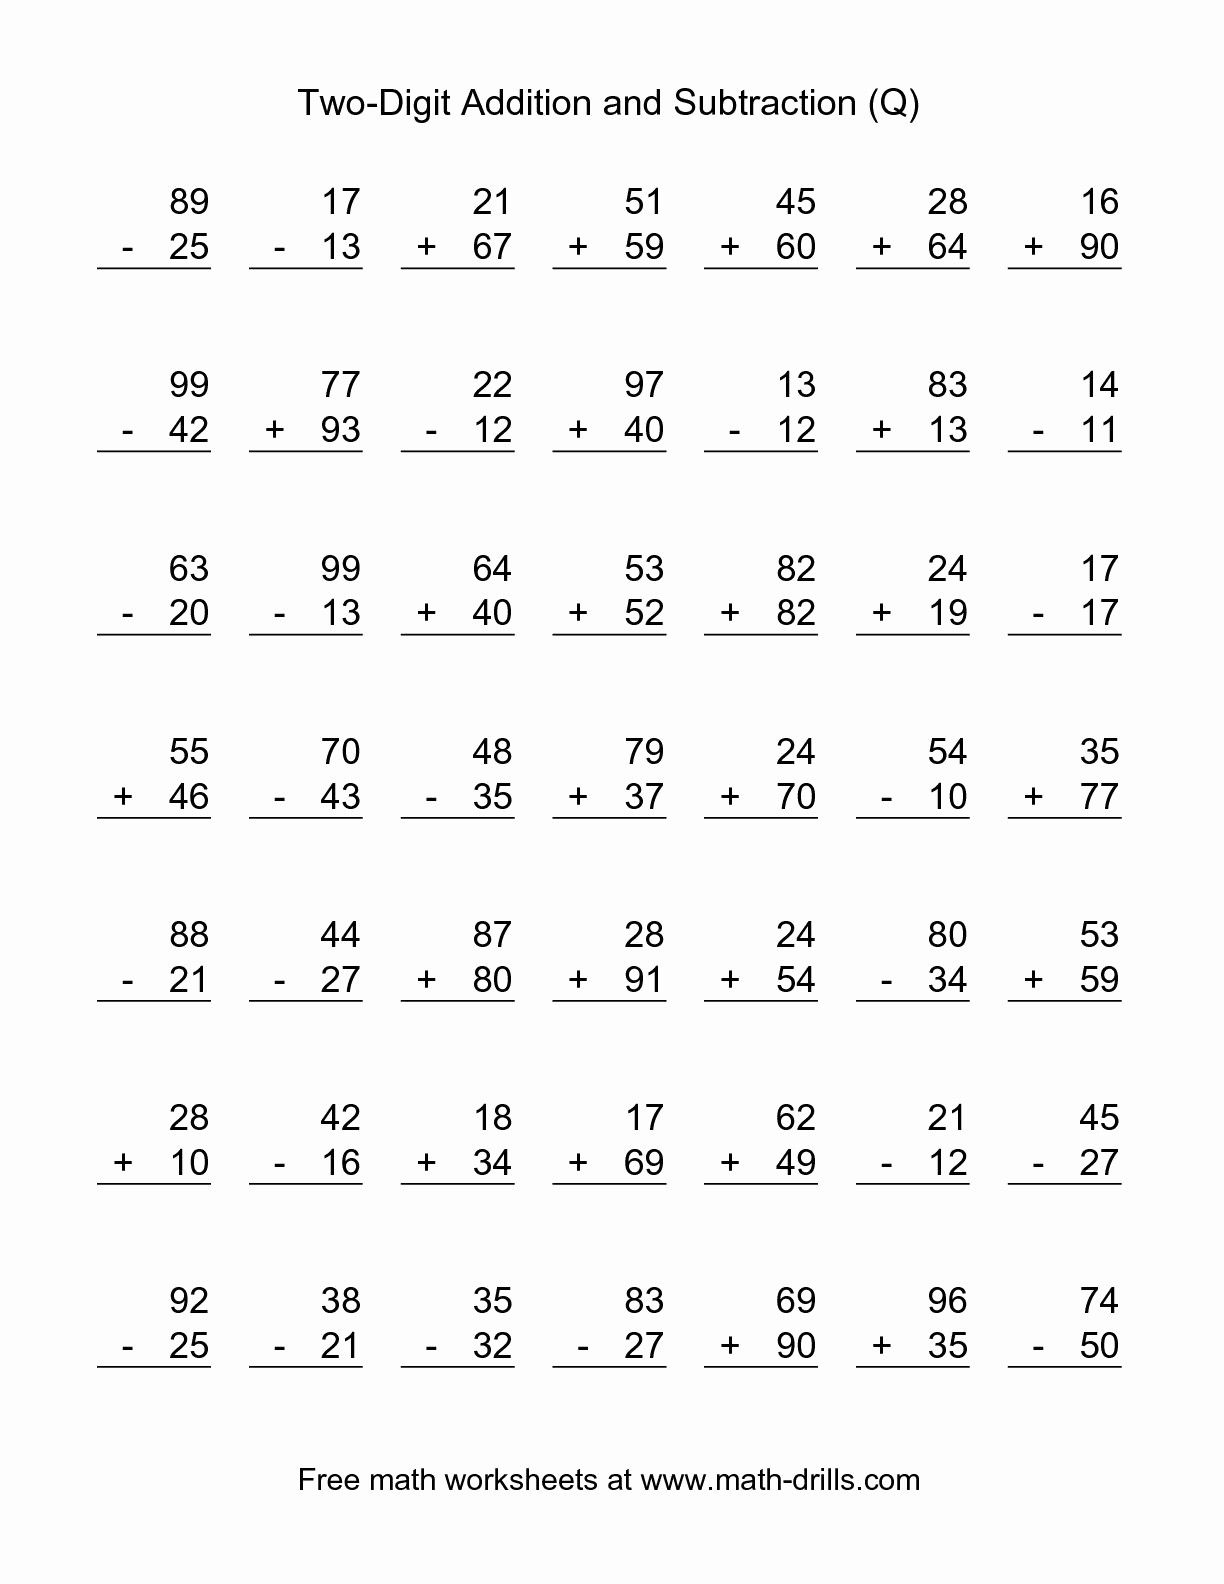 2nd Grade Math Worksheets Printable Second Grade Math Worksheets To Free Down 2nd Grade Math Worksheets Third Grade Math Worksheets First Grade Math Worksheets